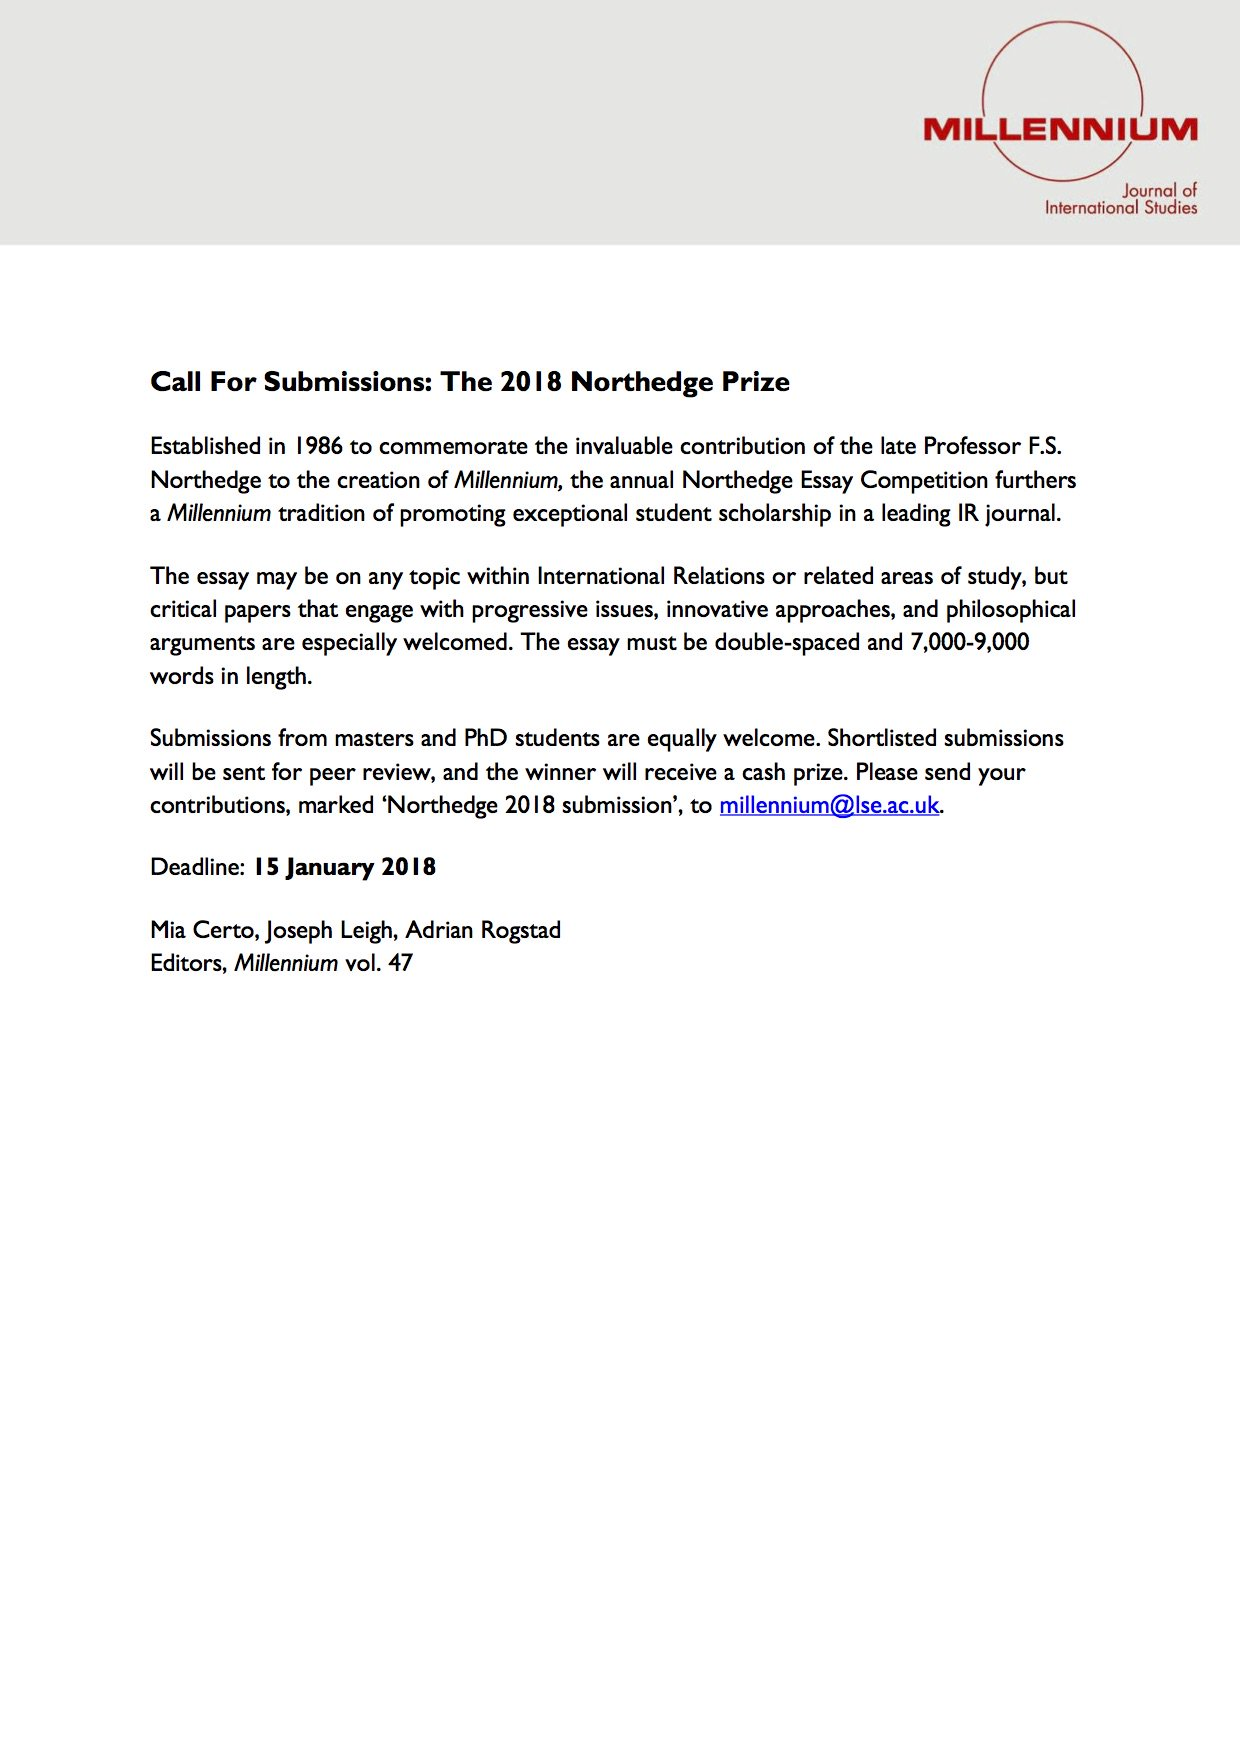 Narrative Essay Thesis Millennium Journal On Twitter Call For Student Essays The  Northedge  Prize  Deadline  January  The Essay May Be On Any Topic Within Ir  Or  Examples Of Essay Papers also University English Essay Millennium Journal On Twitter Call For Student Essays The   Genetically Modified Food Essay Thesis